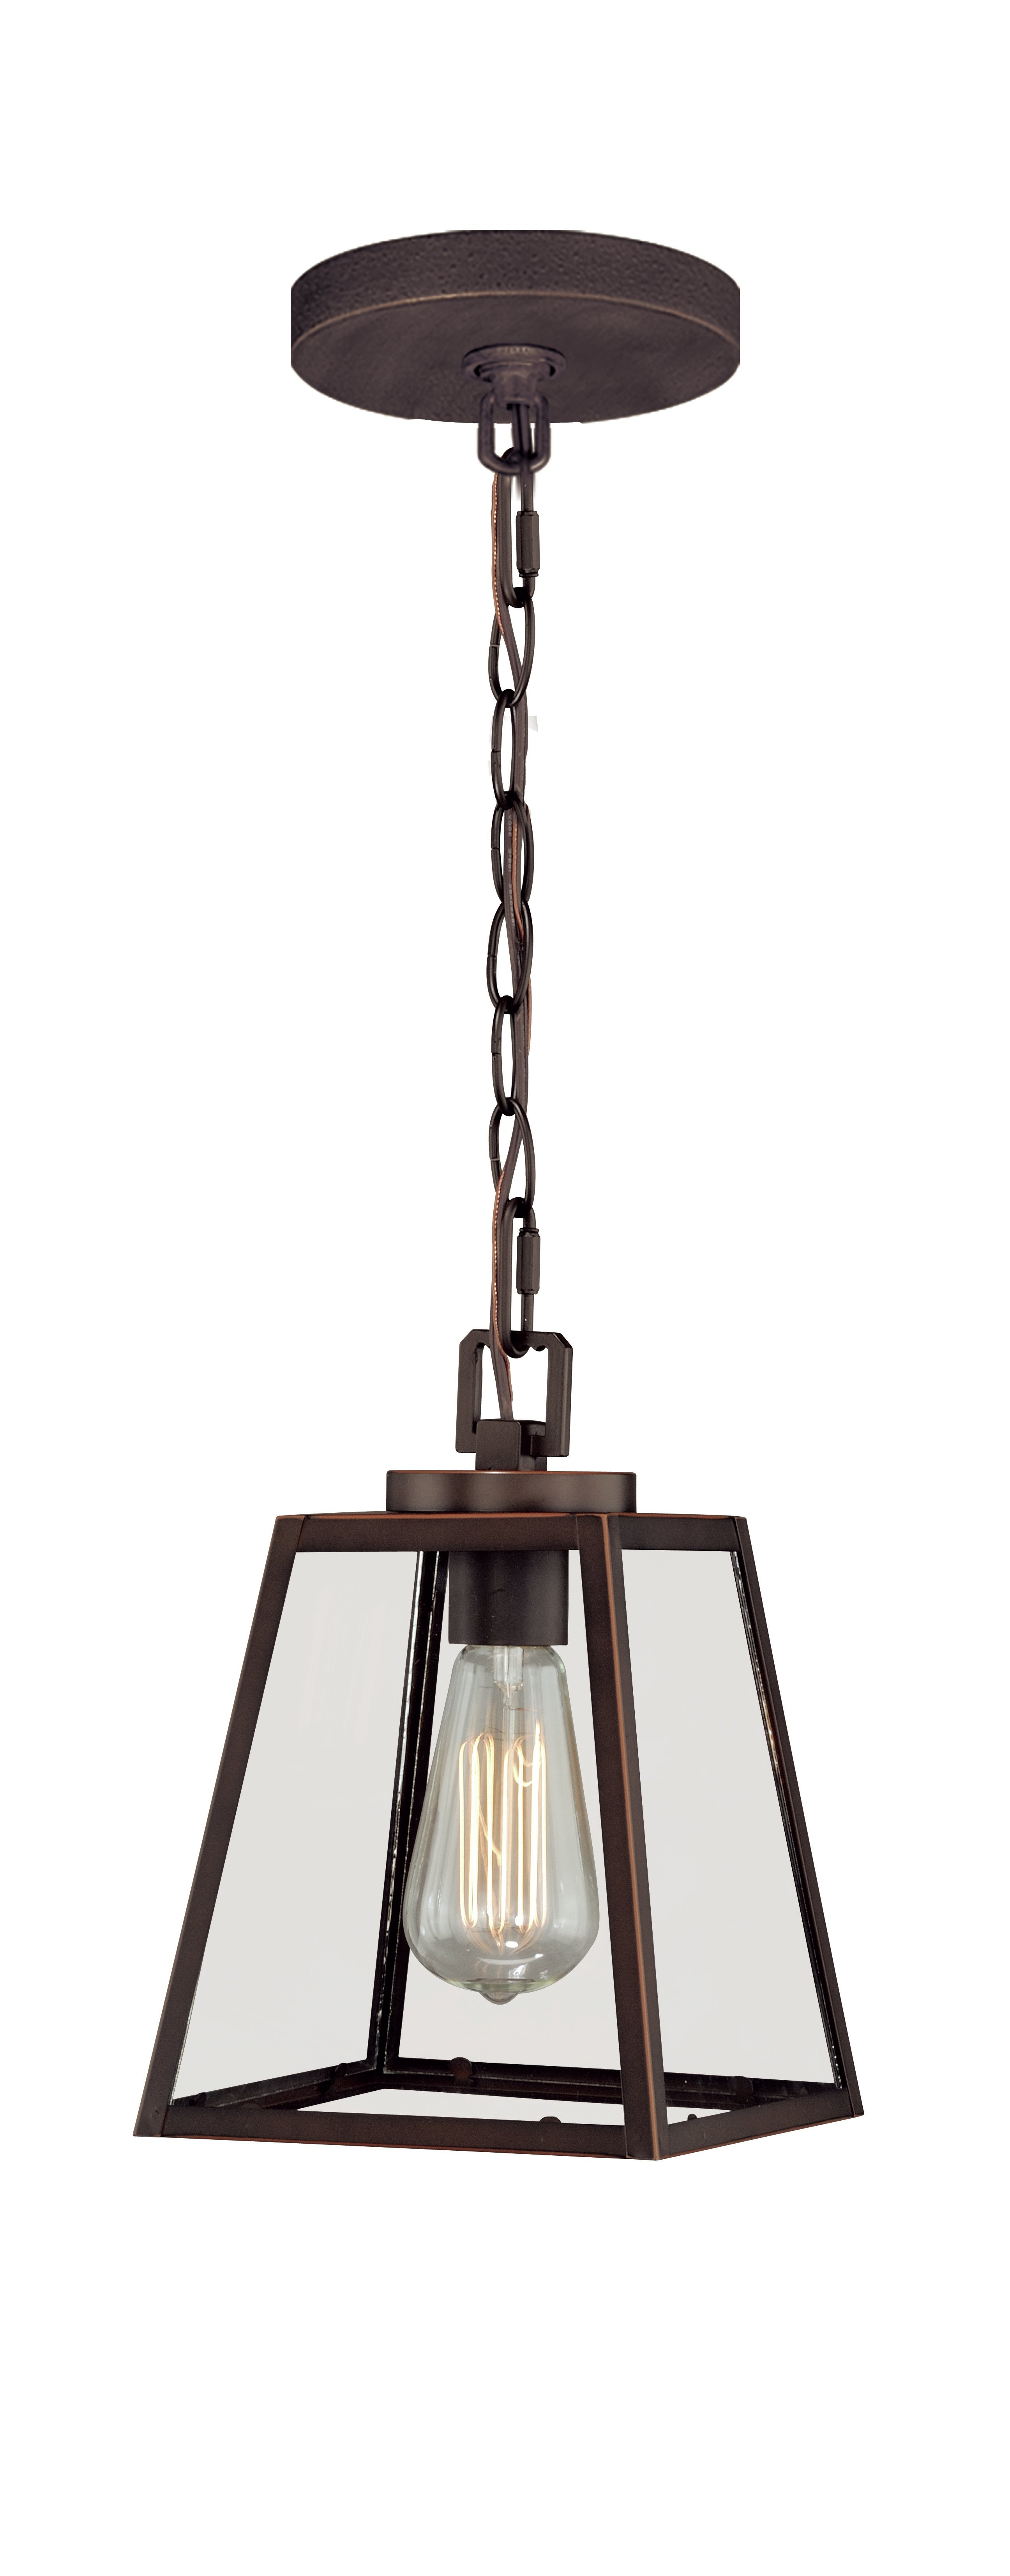 Louanne 1 Light Lantern Geometric Pendants With Fashionable Louanne 1 Light Lantern Geometric Pendant (View 1 of 20)